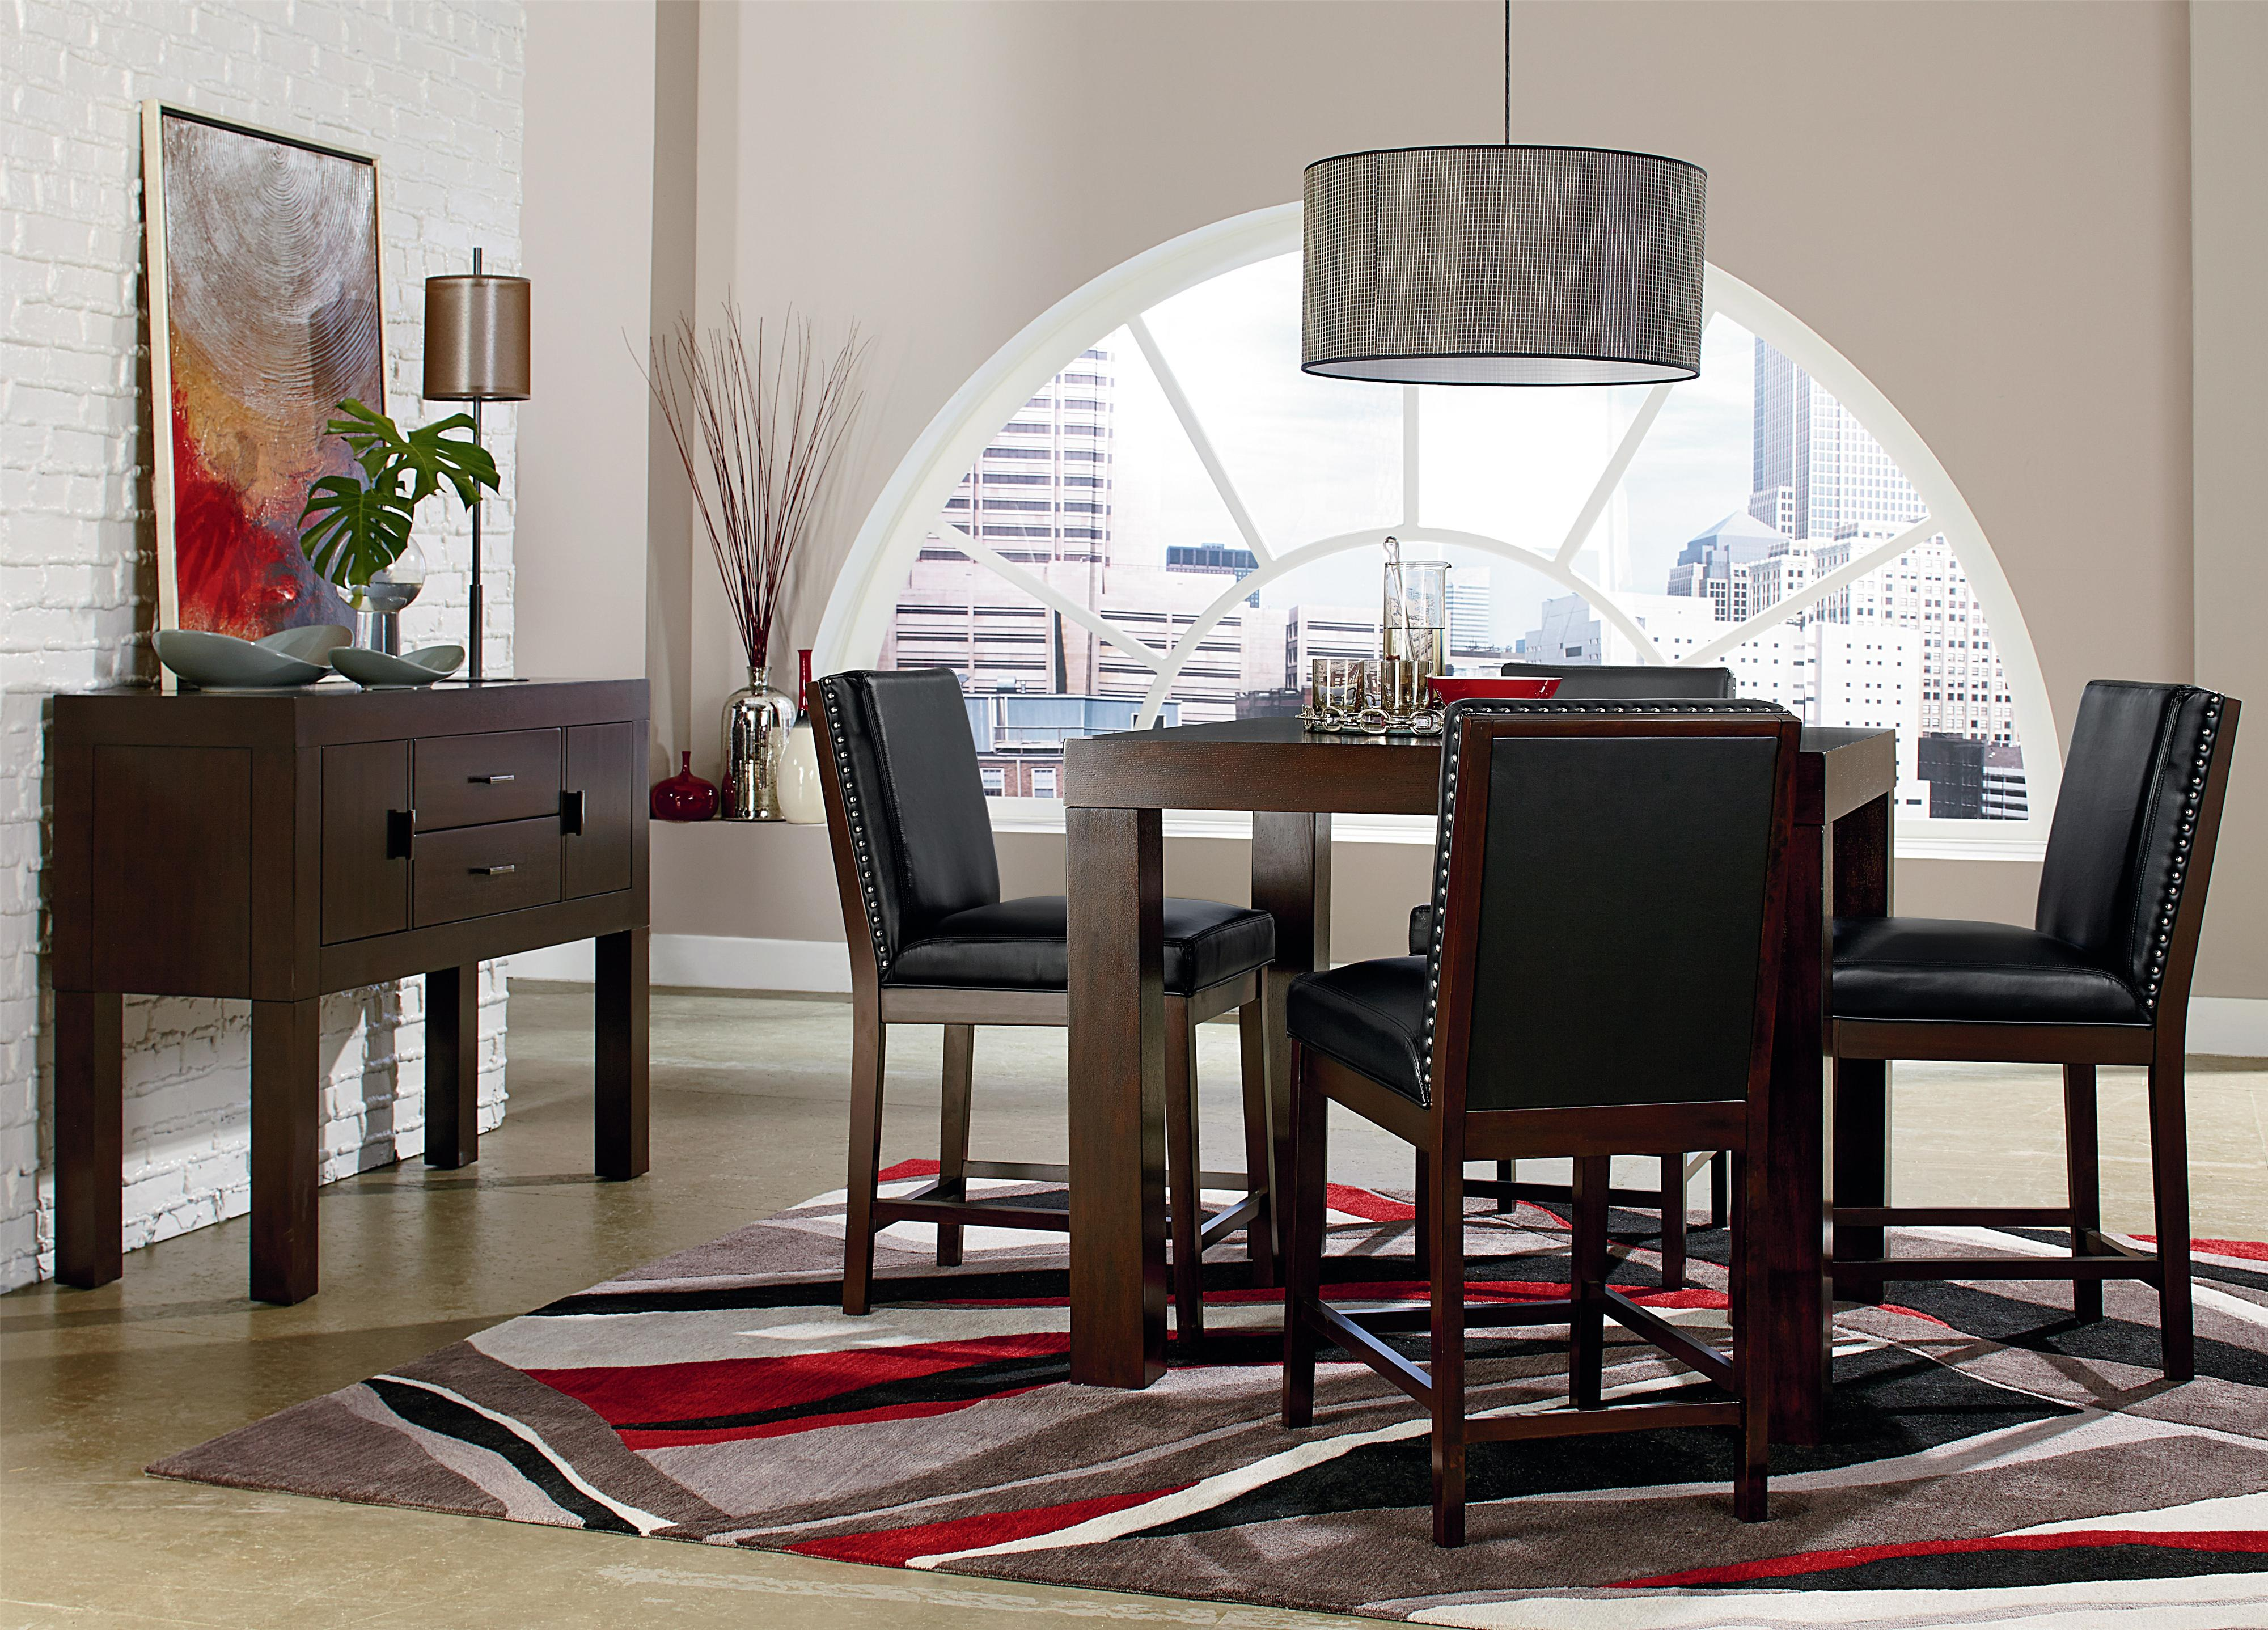 Standard Furniture Couture Elegance Dining Room Group - Item Number: 10560 C Dining Room Group 1